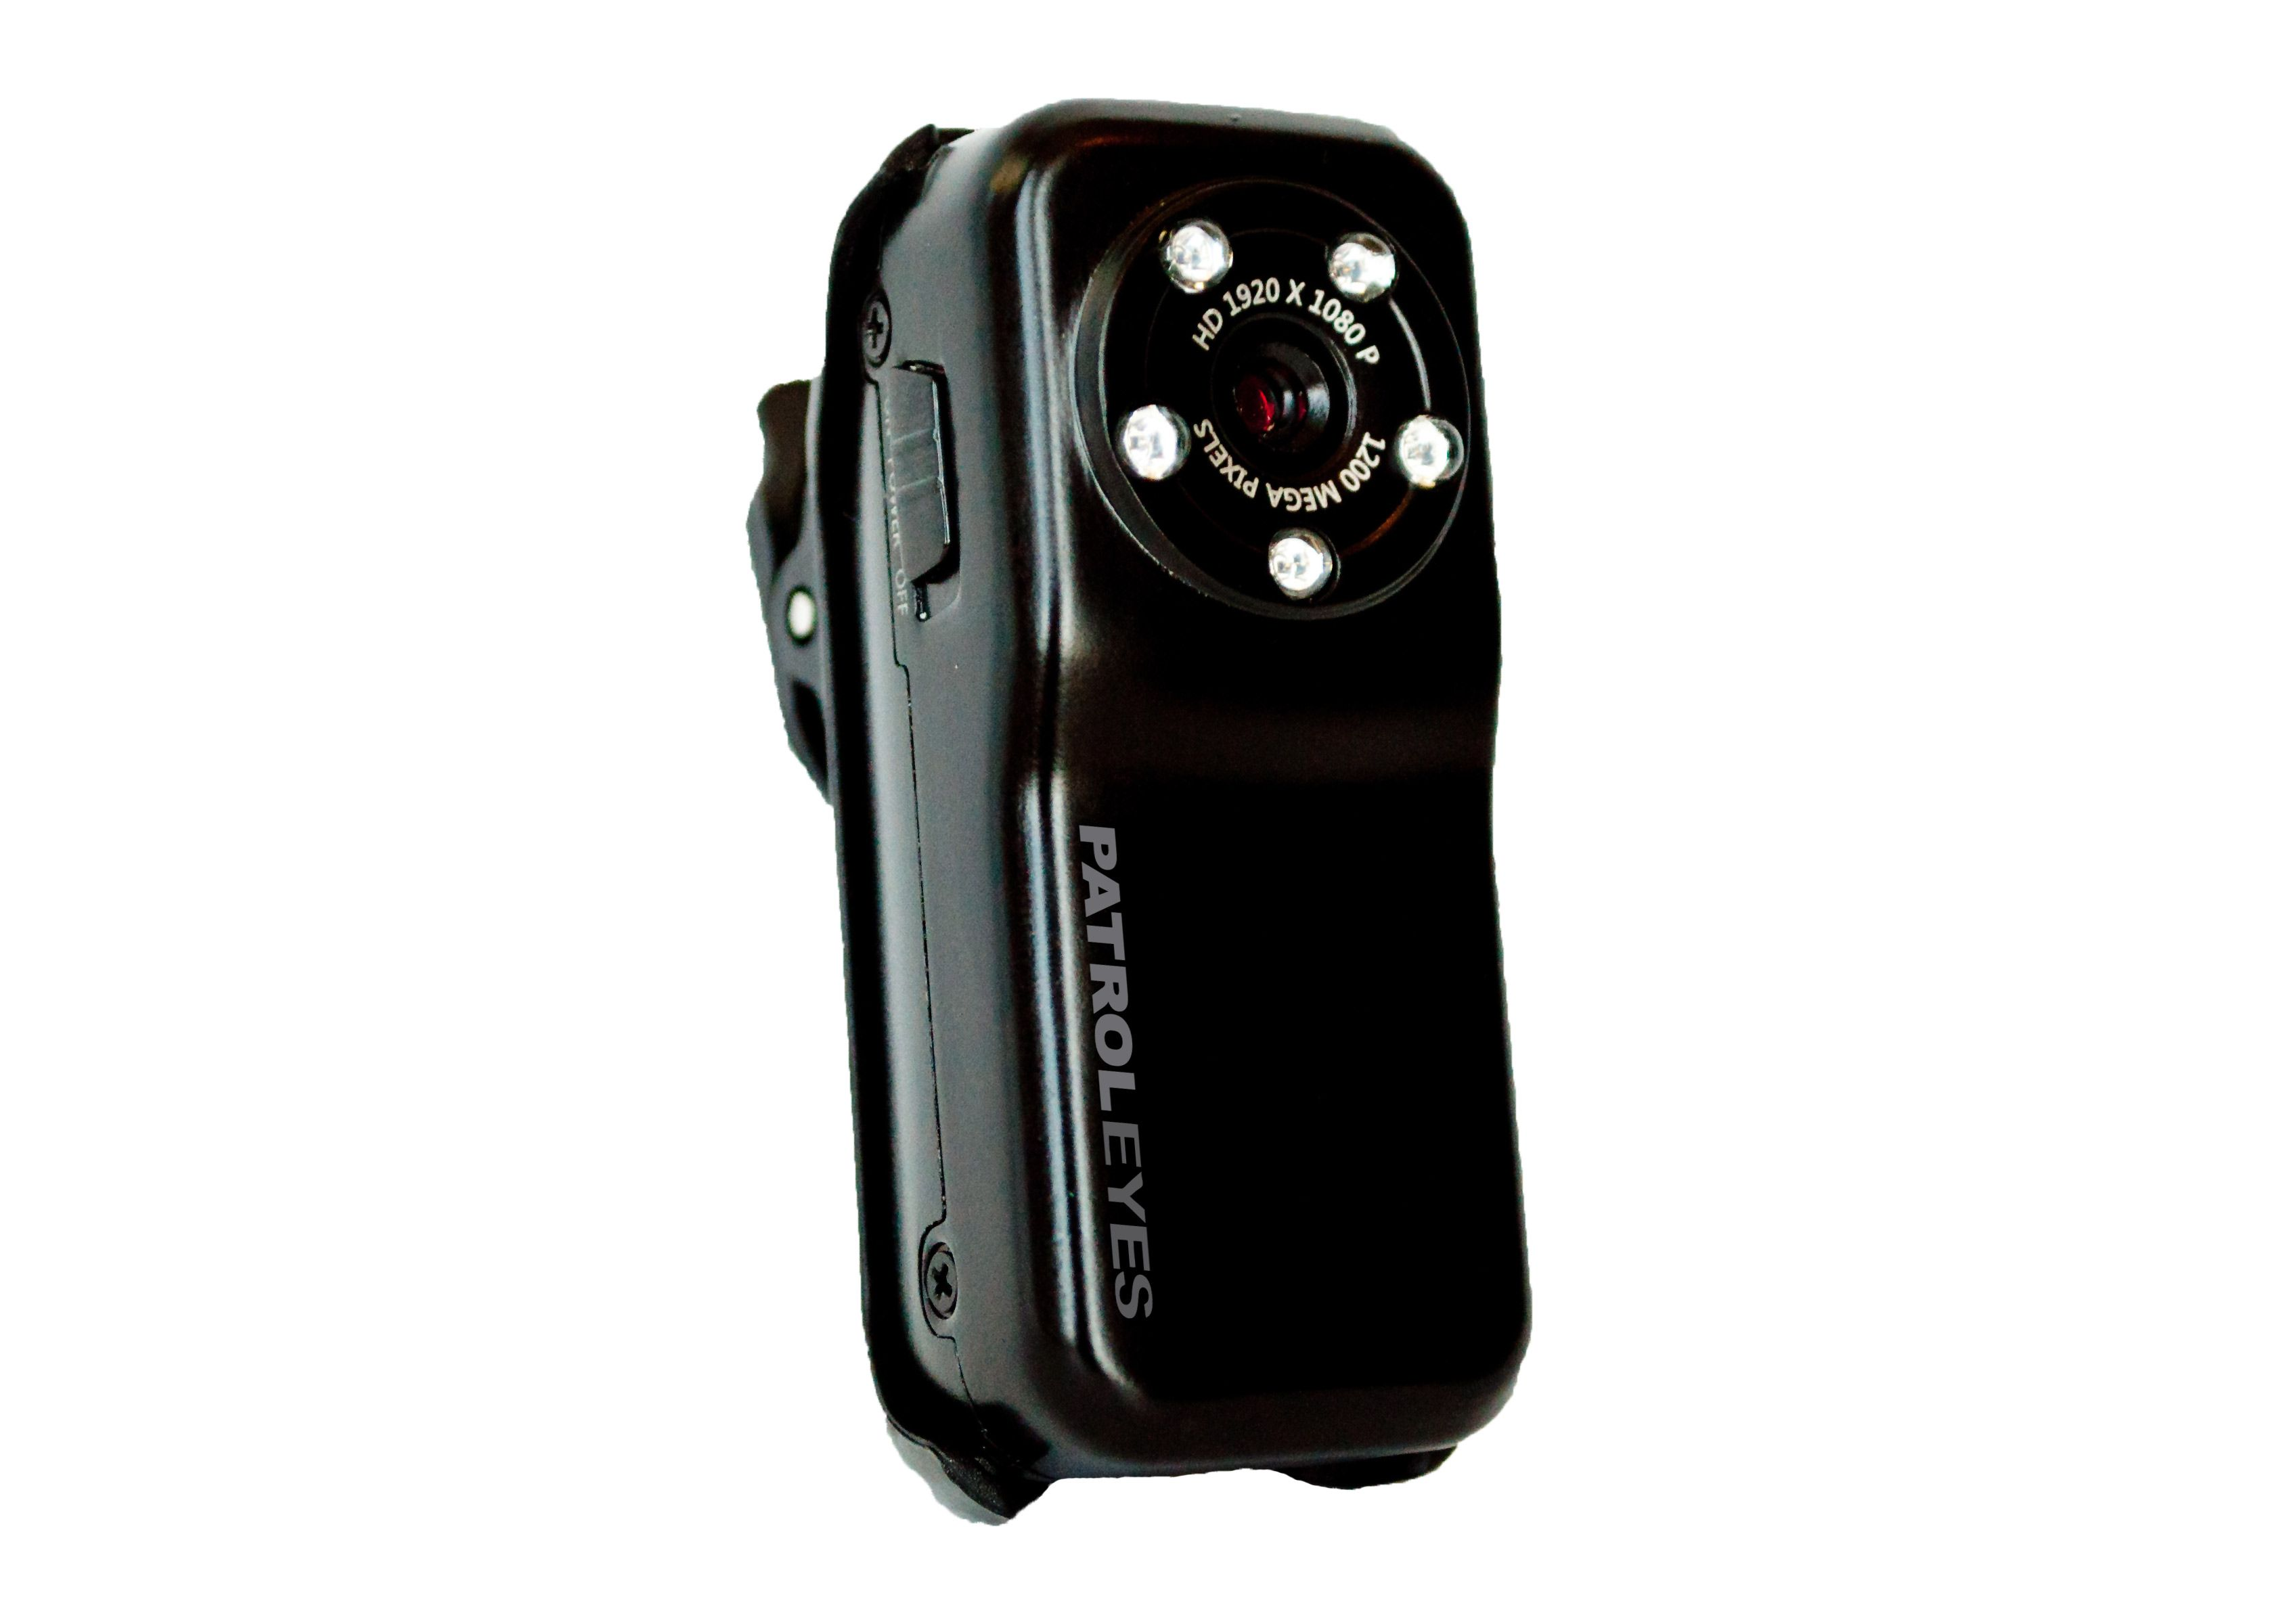 Pre-order Now! #PatrolEyes Mini #Infrared Body Camera This new PatrolEyes Mini Infrared #BodyCamera is as small as they get and records great audio and video! This camera offers full HD 1080p resolution video at 30fps! The SC-IRM is about the size of an AA battery and comes in a heavy duty metal alloy shell. Included are a host of accessories including removable pocket/vest alligator clip, strap, belt mount, dash mount, stand mount, and USB cable for charging. #police